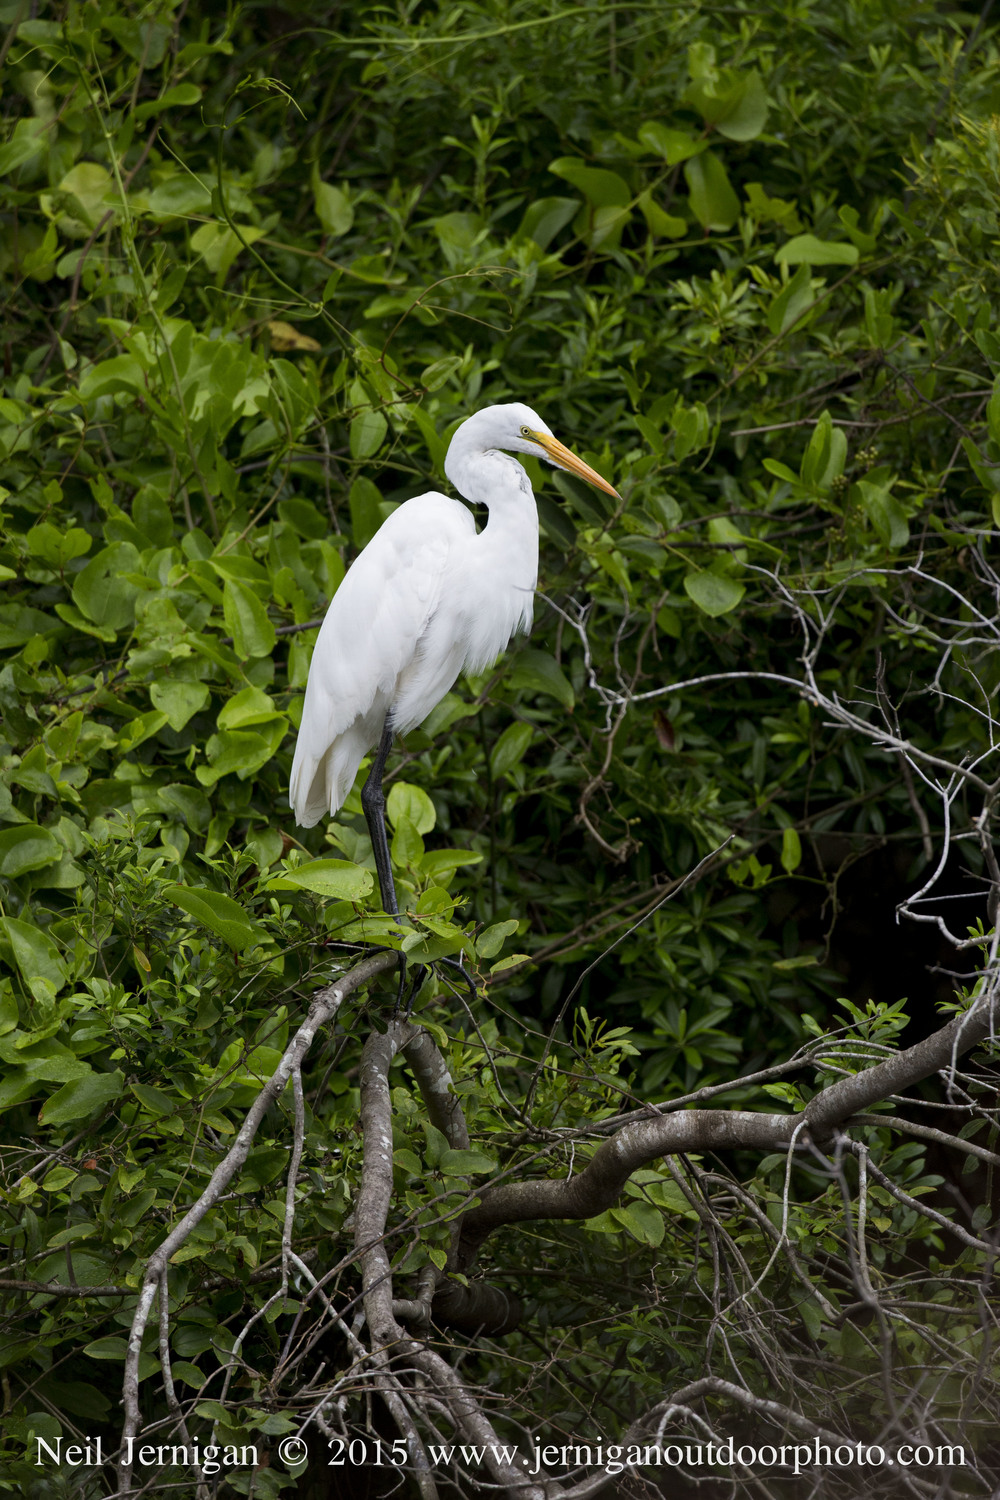 This great egret also had a nest in the colony.